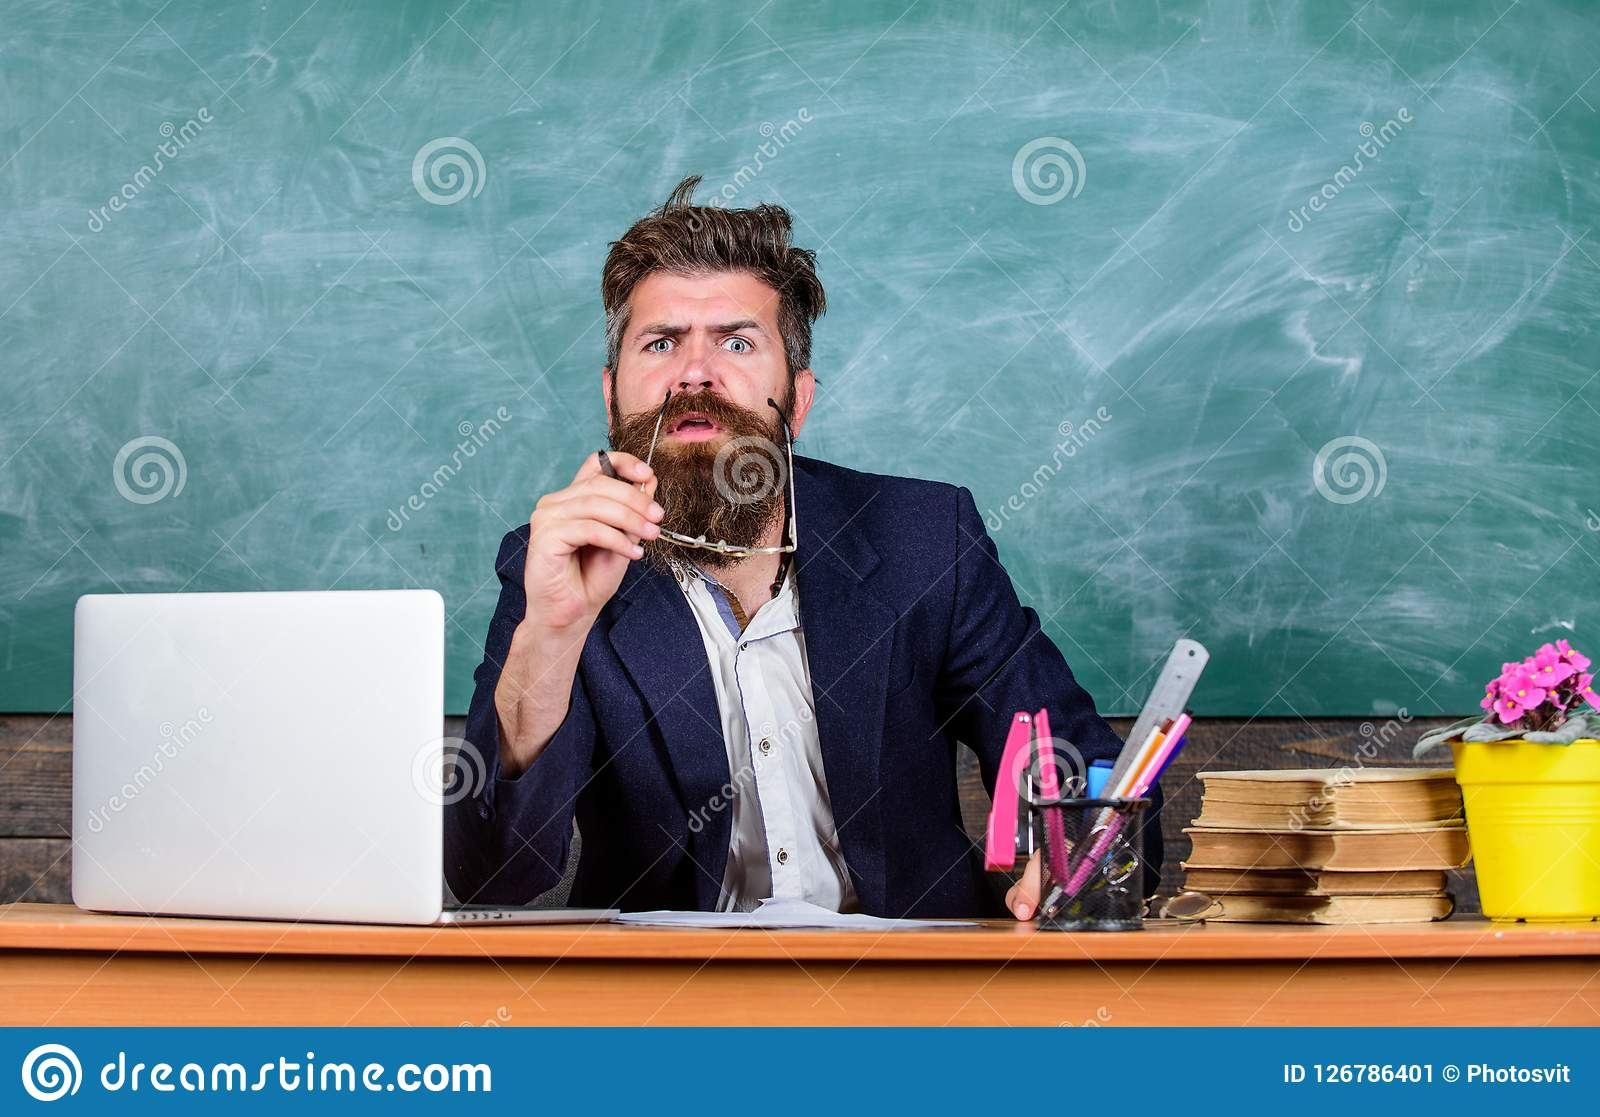 Educator finished explanation, asking is all clear. School teacher prepare ask questions. Teacher bearded hipster with